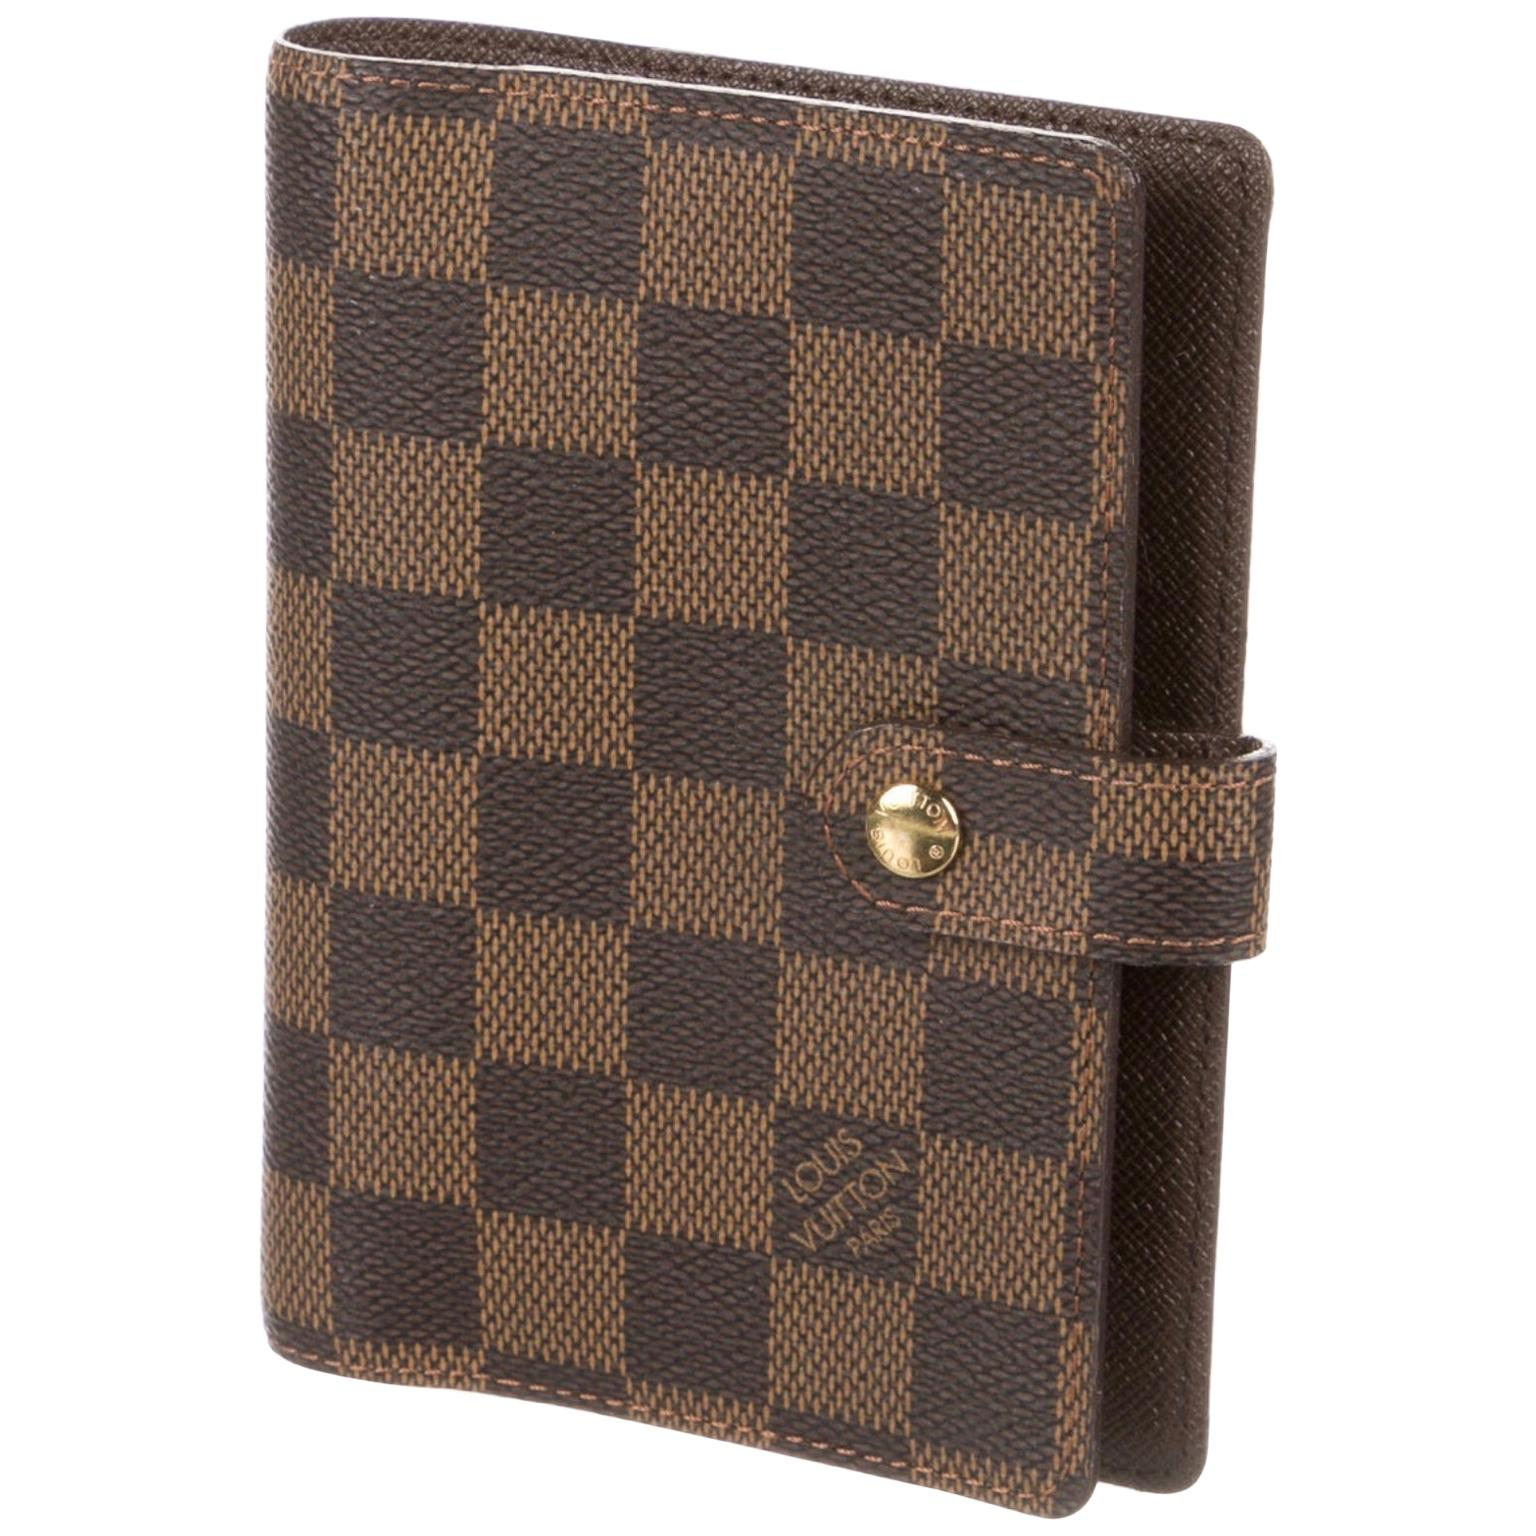 59-5 LOUIS VUITTON Damier Ebene Agenda Holder Accessories # 4667